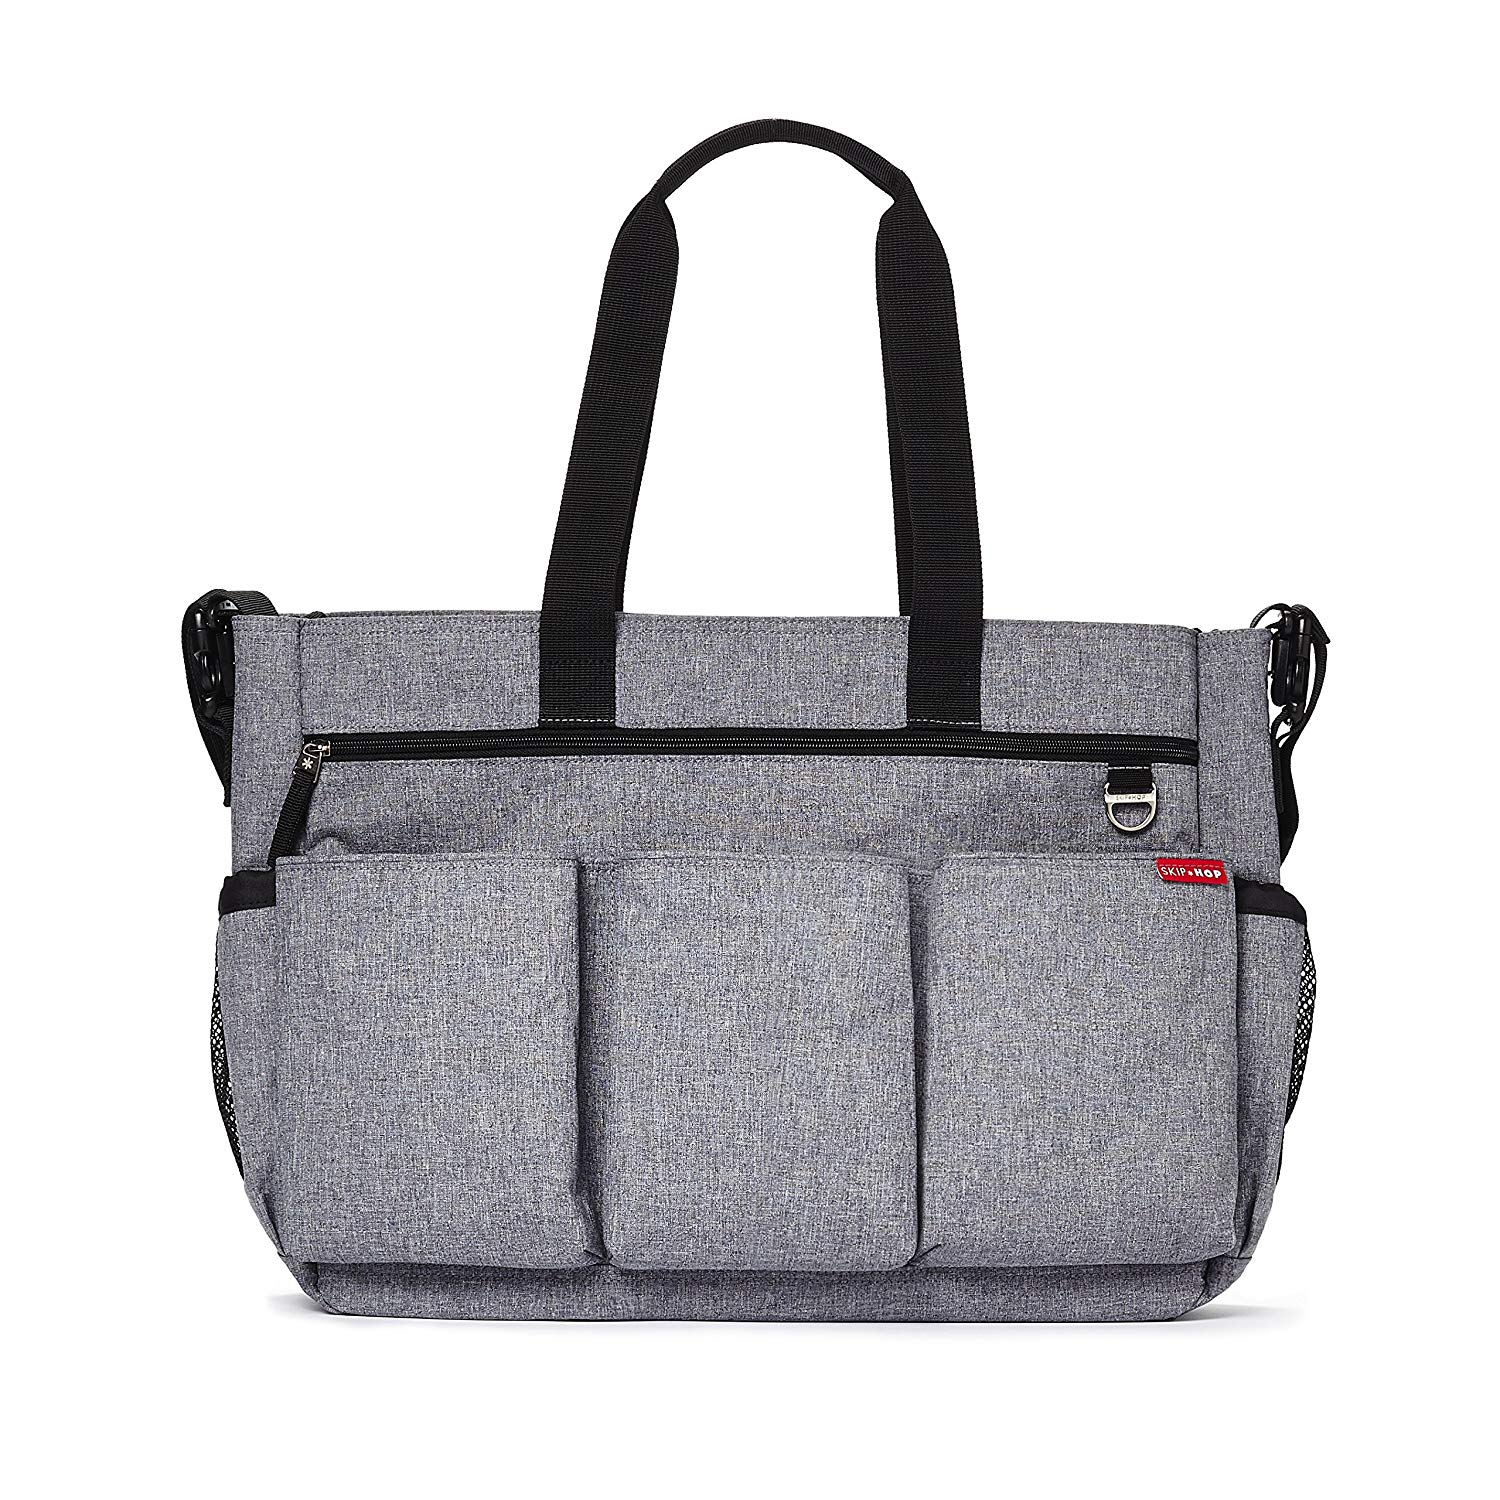 Skip Hop Duo Double Signature Carry All Travel Diaper Bag